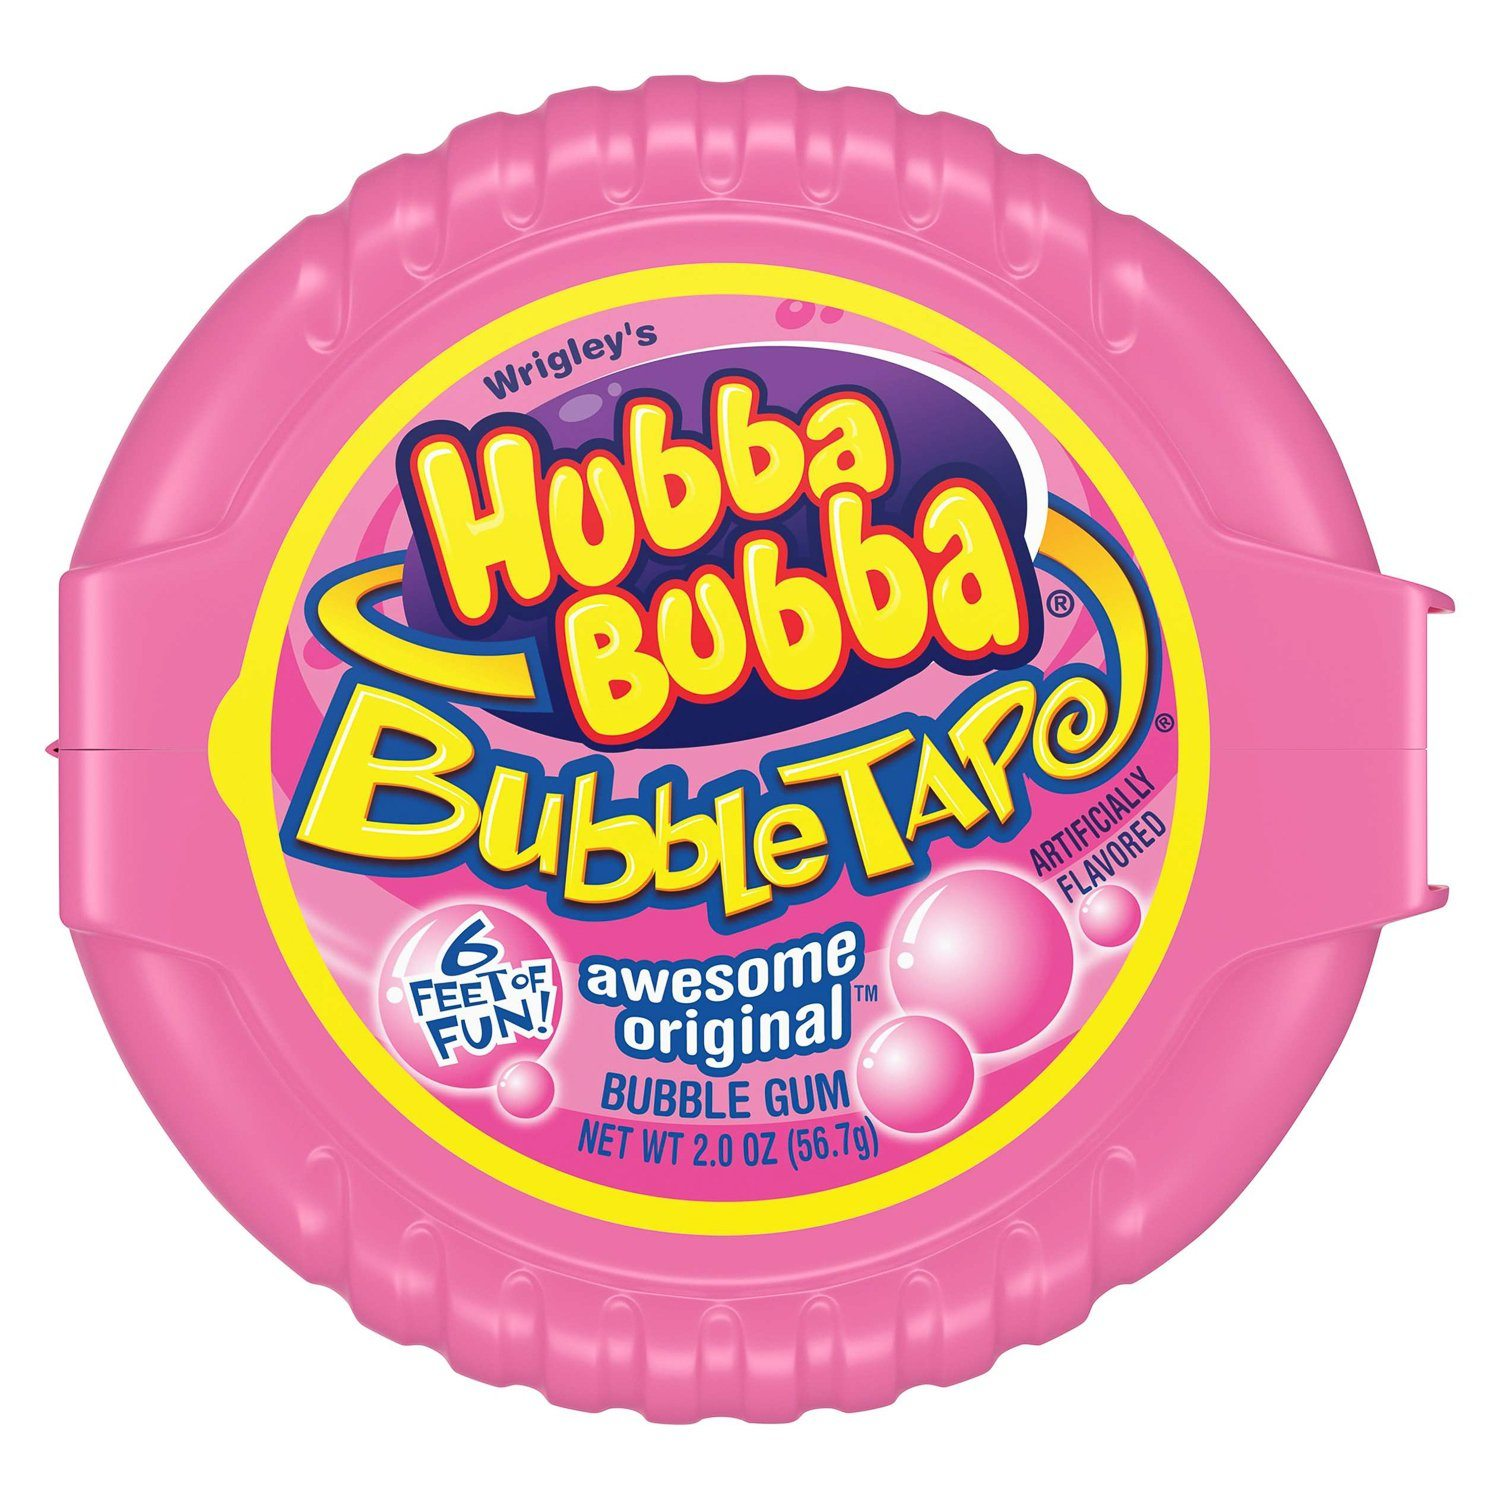 Hubba Bubba Bubble Gum Hubba Bubba Original 2 Ounce